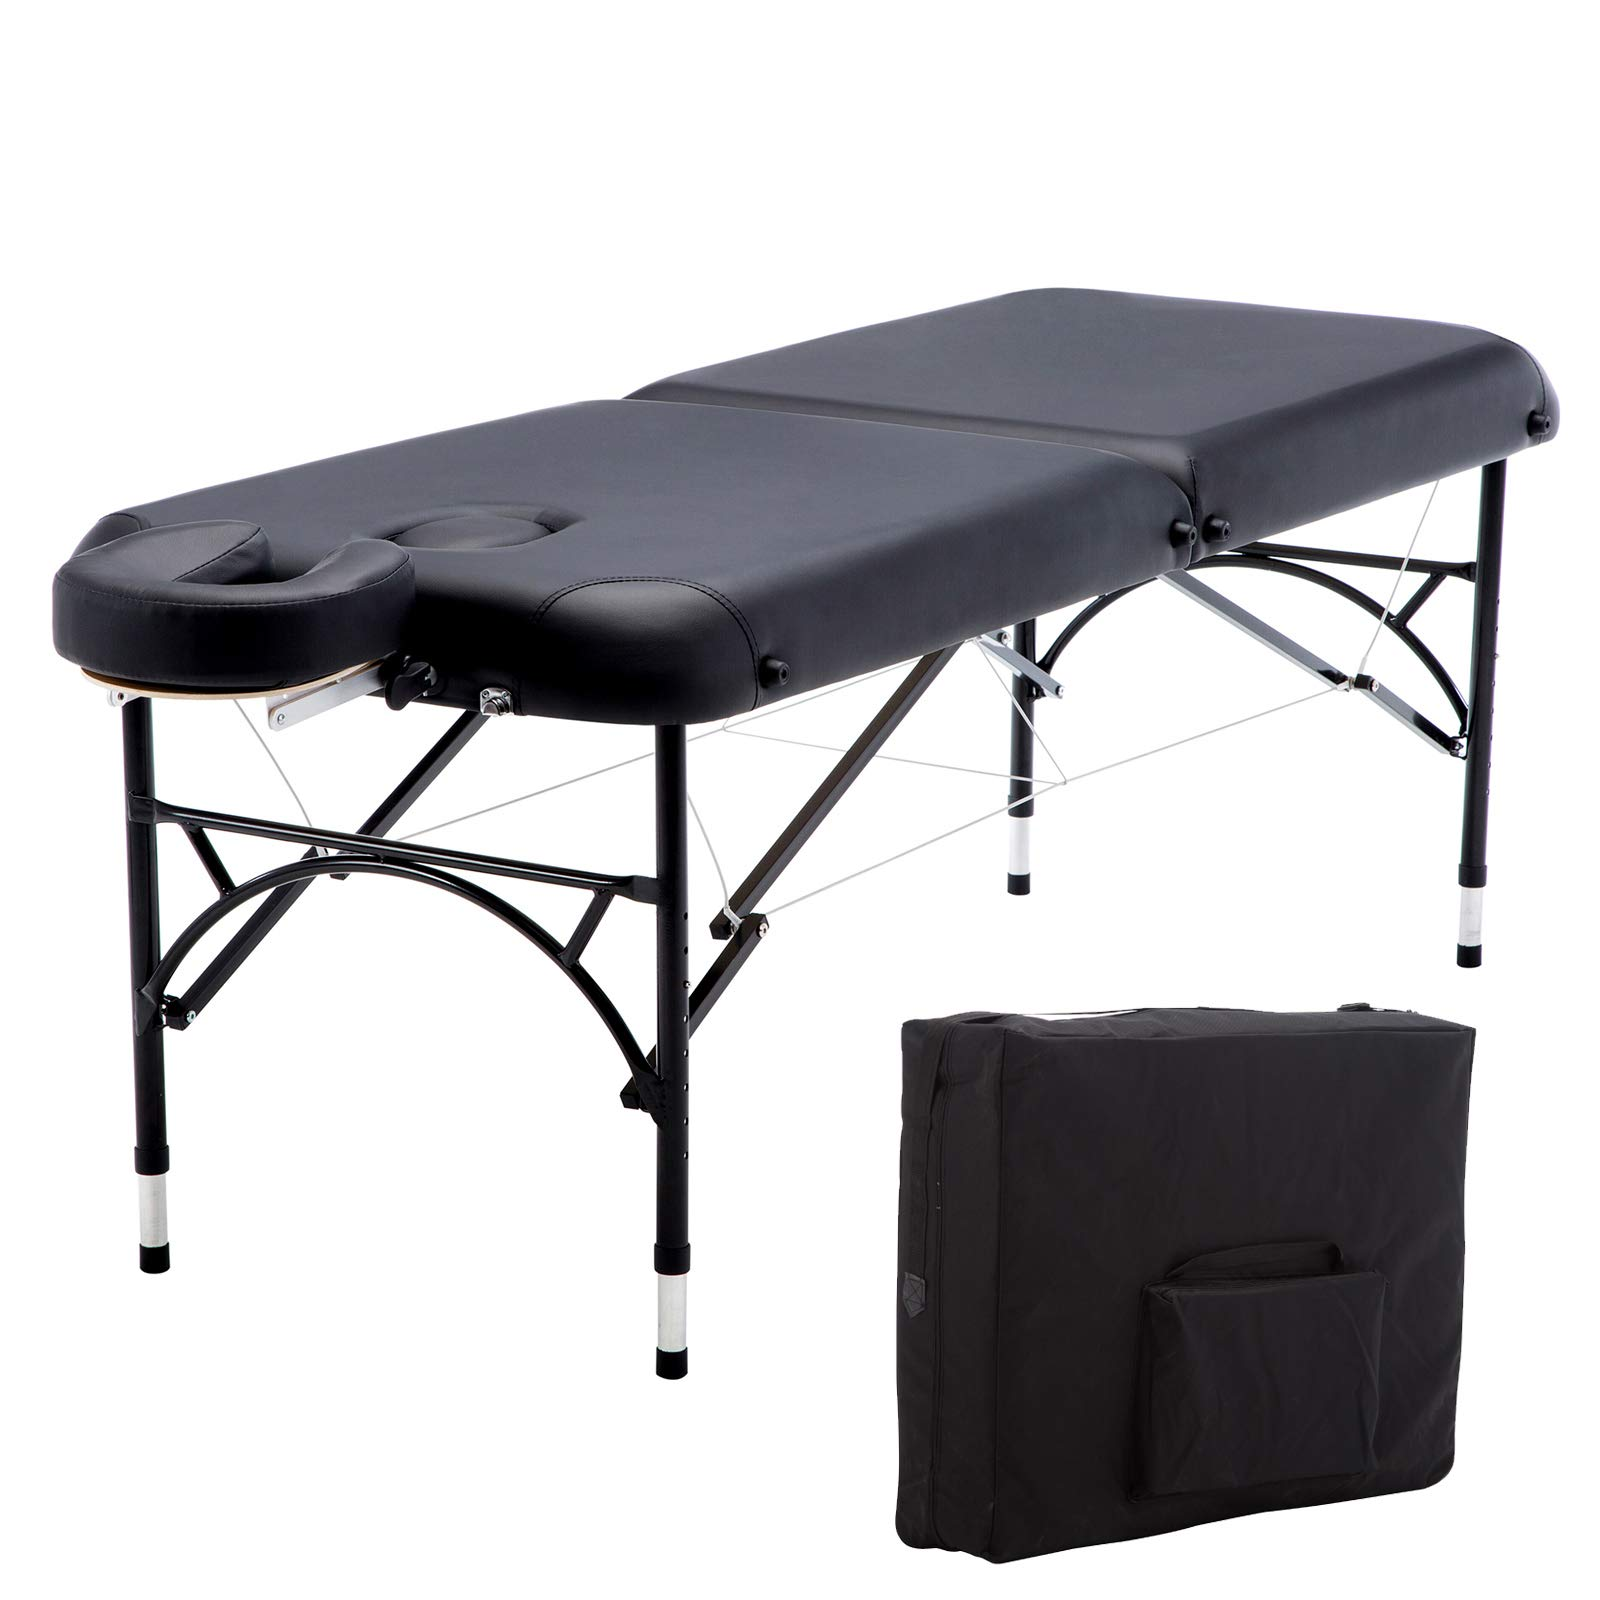 Artechworks 84'' Professional 2 Folding Portable Lightweight Massage Table Facial Solon Spa Tattoo Bed With Aluminium Leg(2.56'' Thick Cushion of Foam) by Artechworks